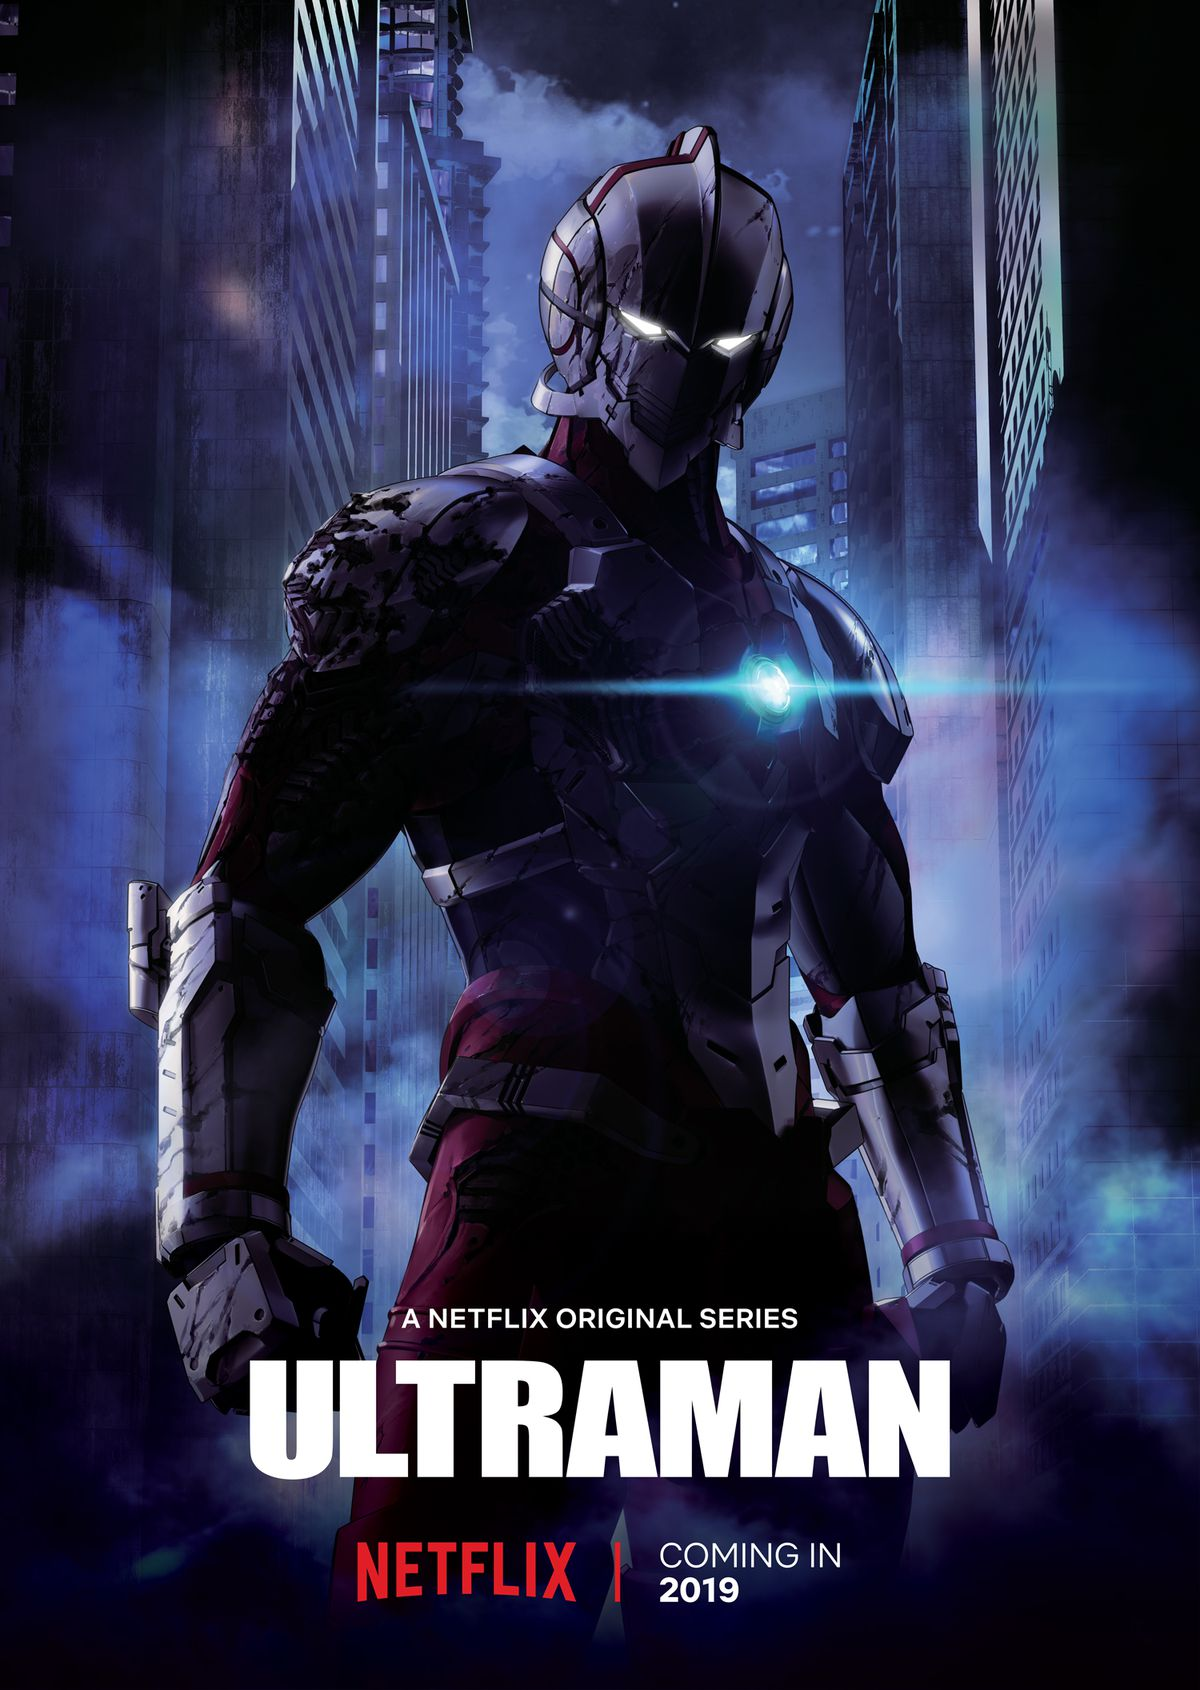 netflix u2019s anime plans include ultraman revival and